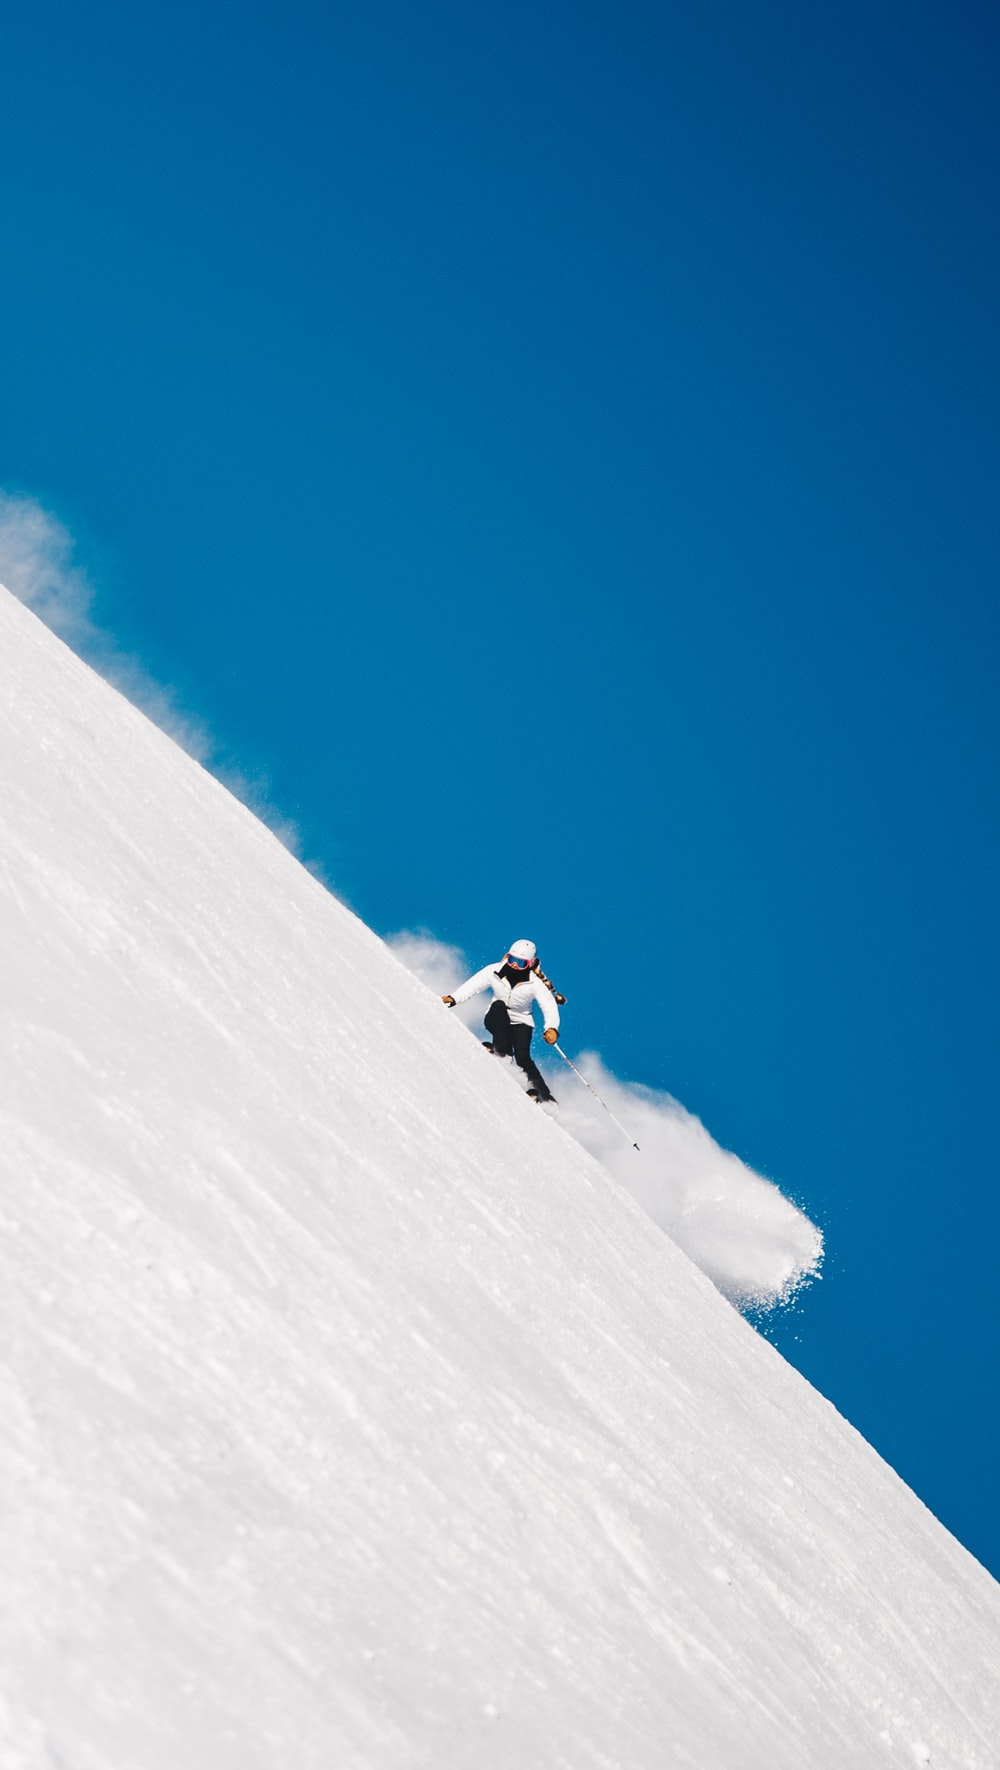 person snowboarding on mountain cliff